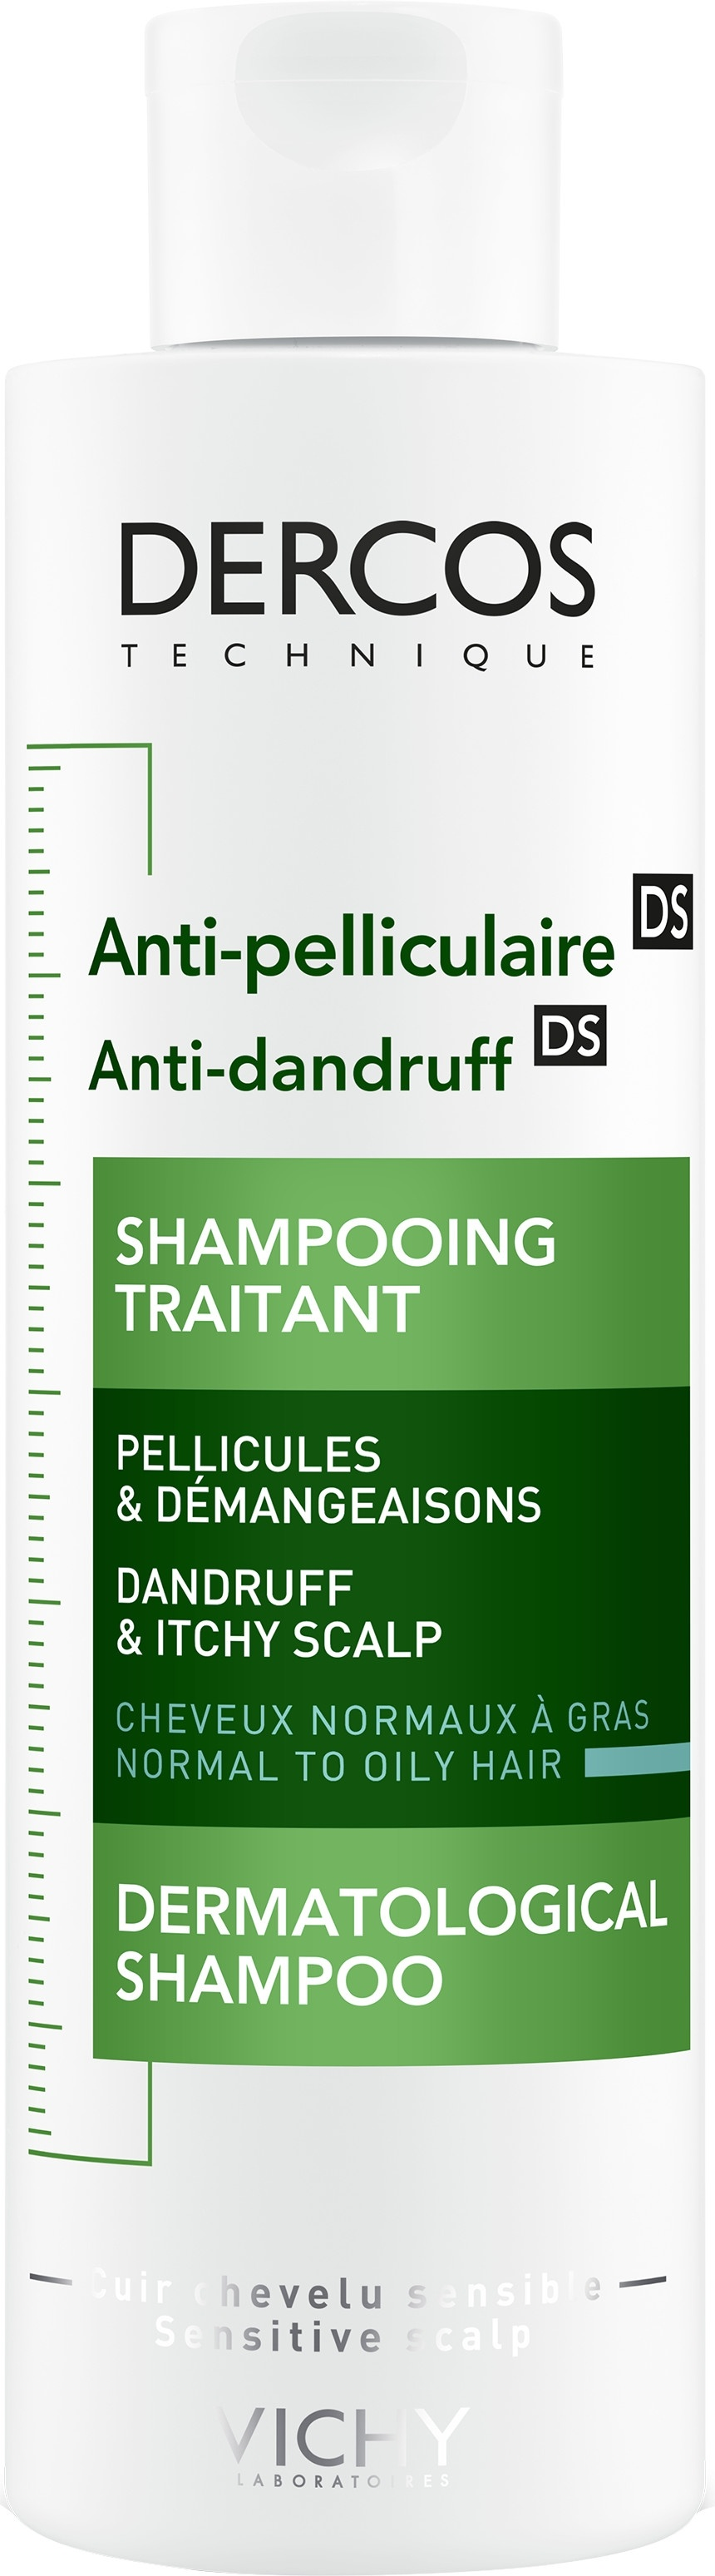 Vichy Dercos Anti-Dandruff Advanced Action Shampoo for Normal to Oily Hair 200ml